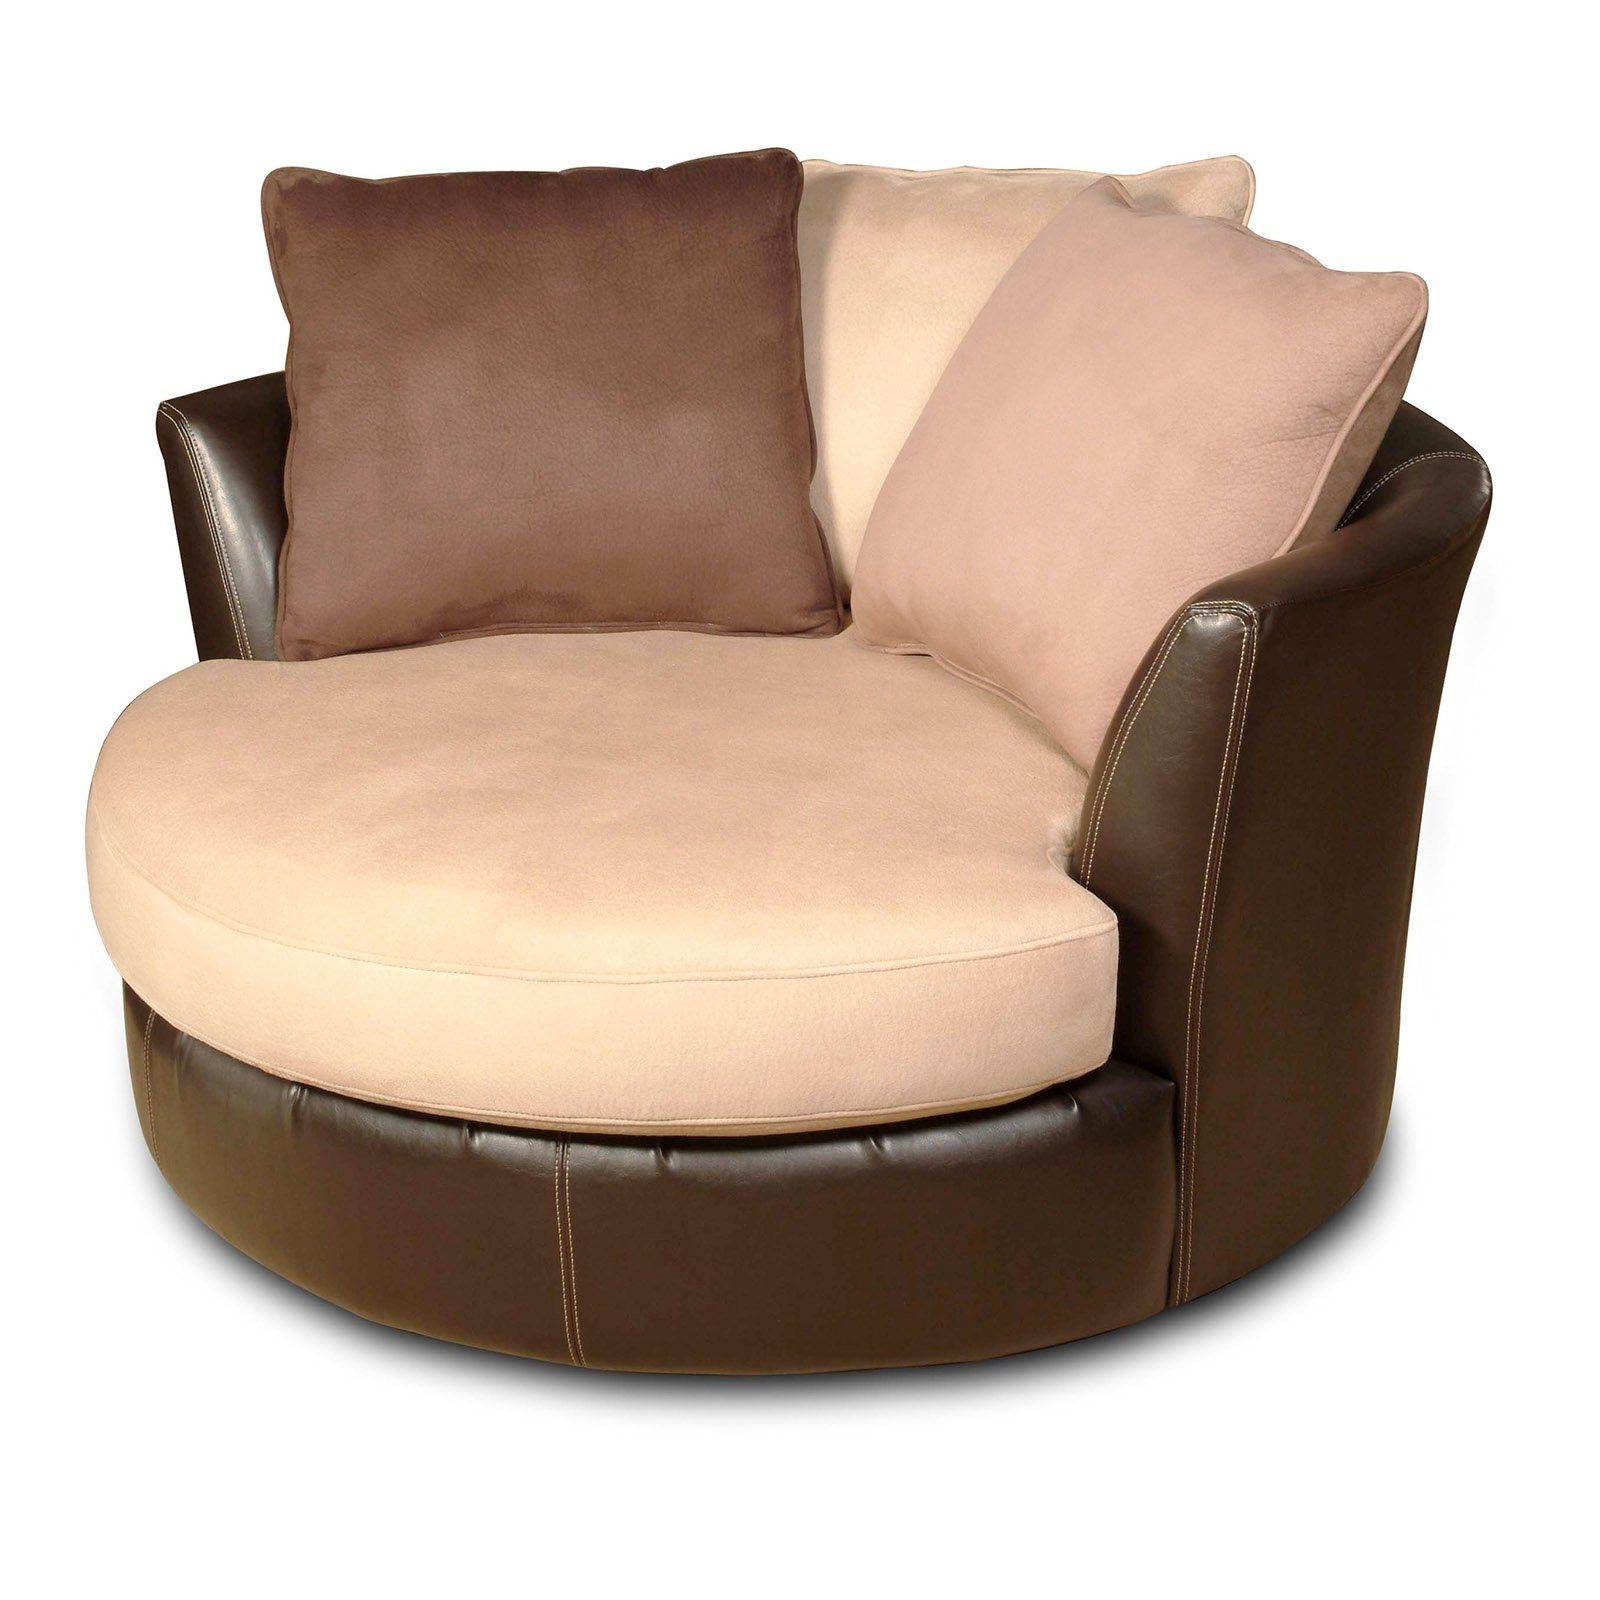 Newest Chelsea Home Furniture Newport Swivel Chair – Laredo Mocha (View 12 of 20)